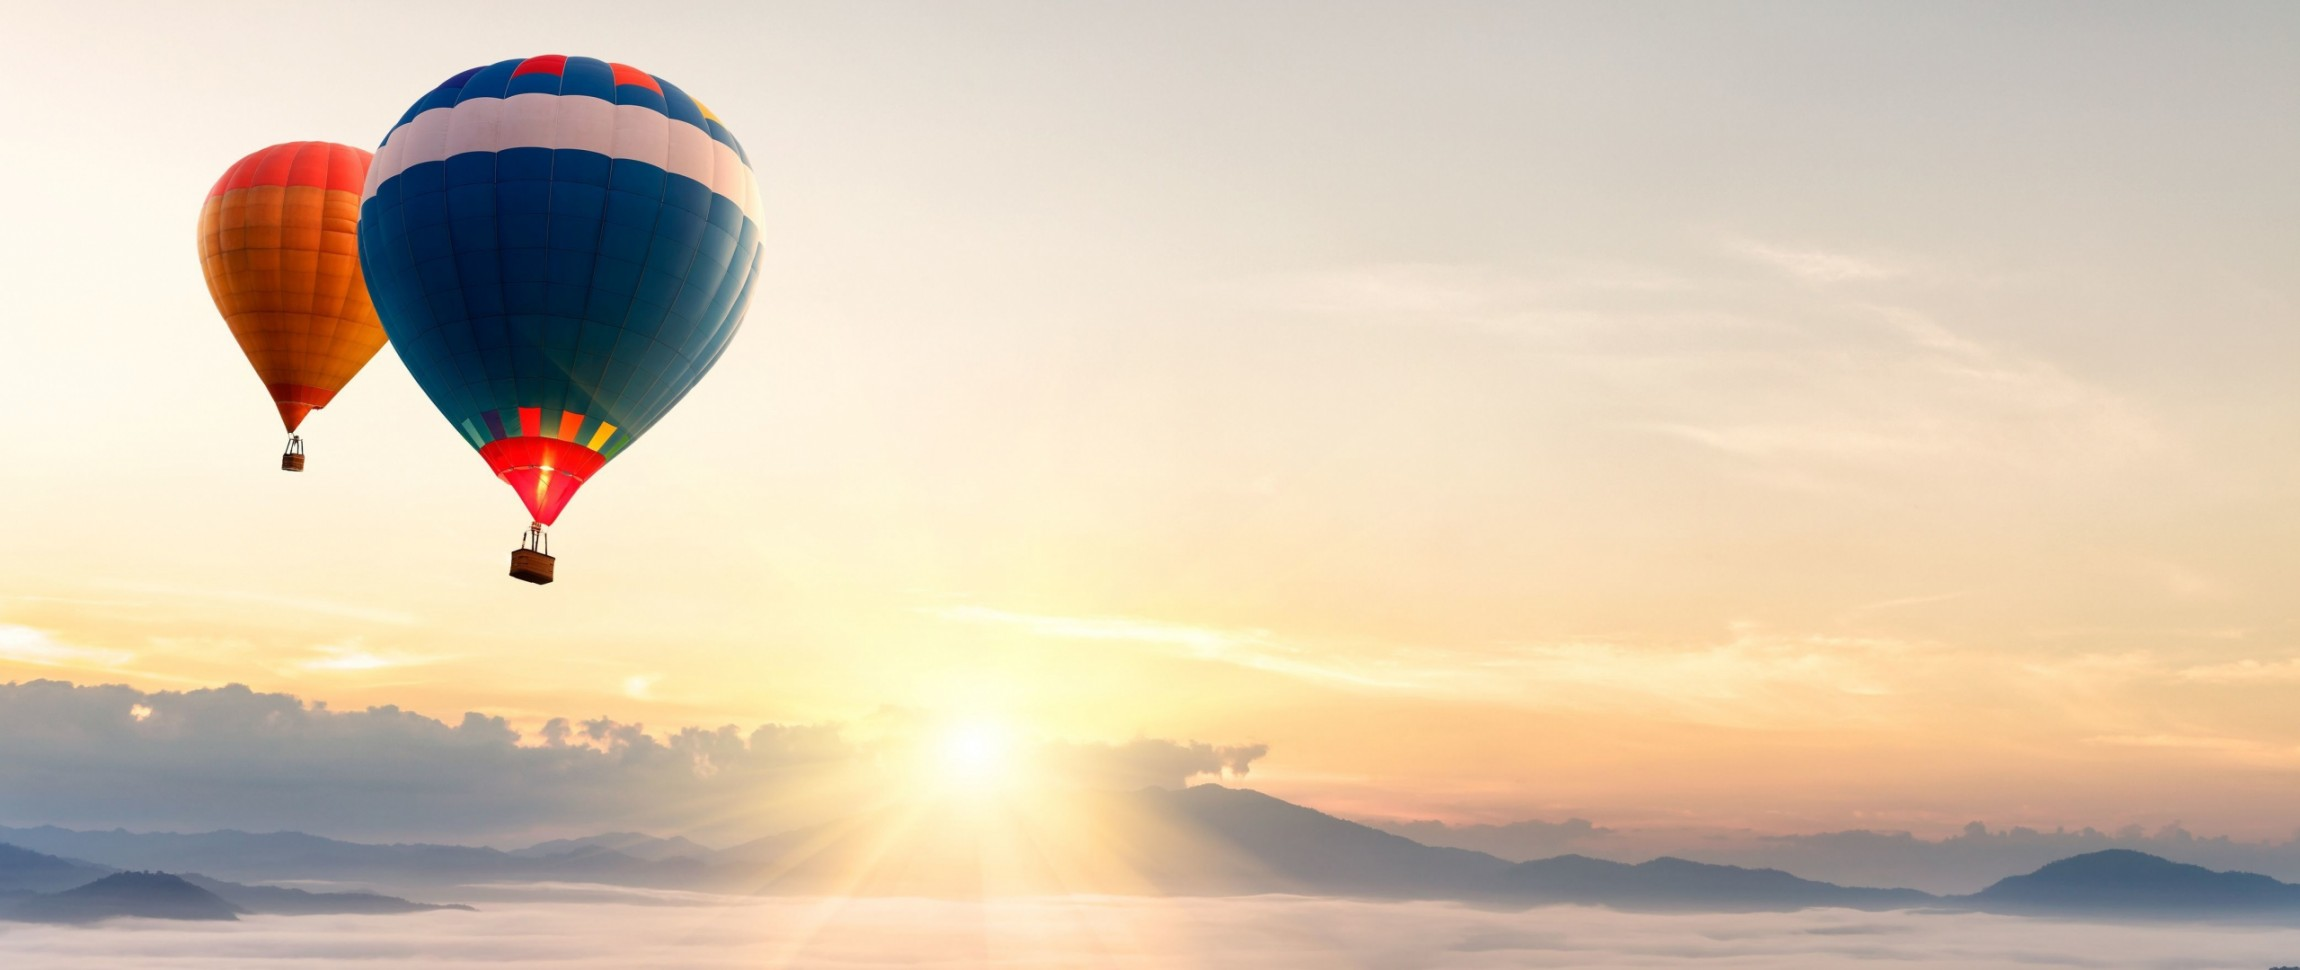 balloon_airship_sky_flying_dawn_93545_2560x1080